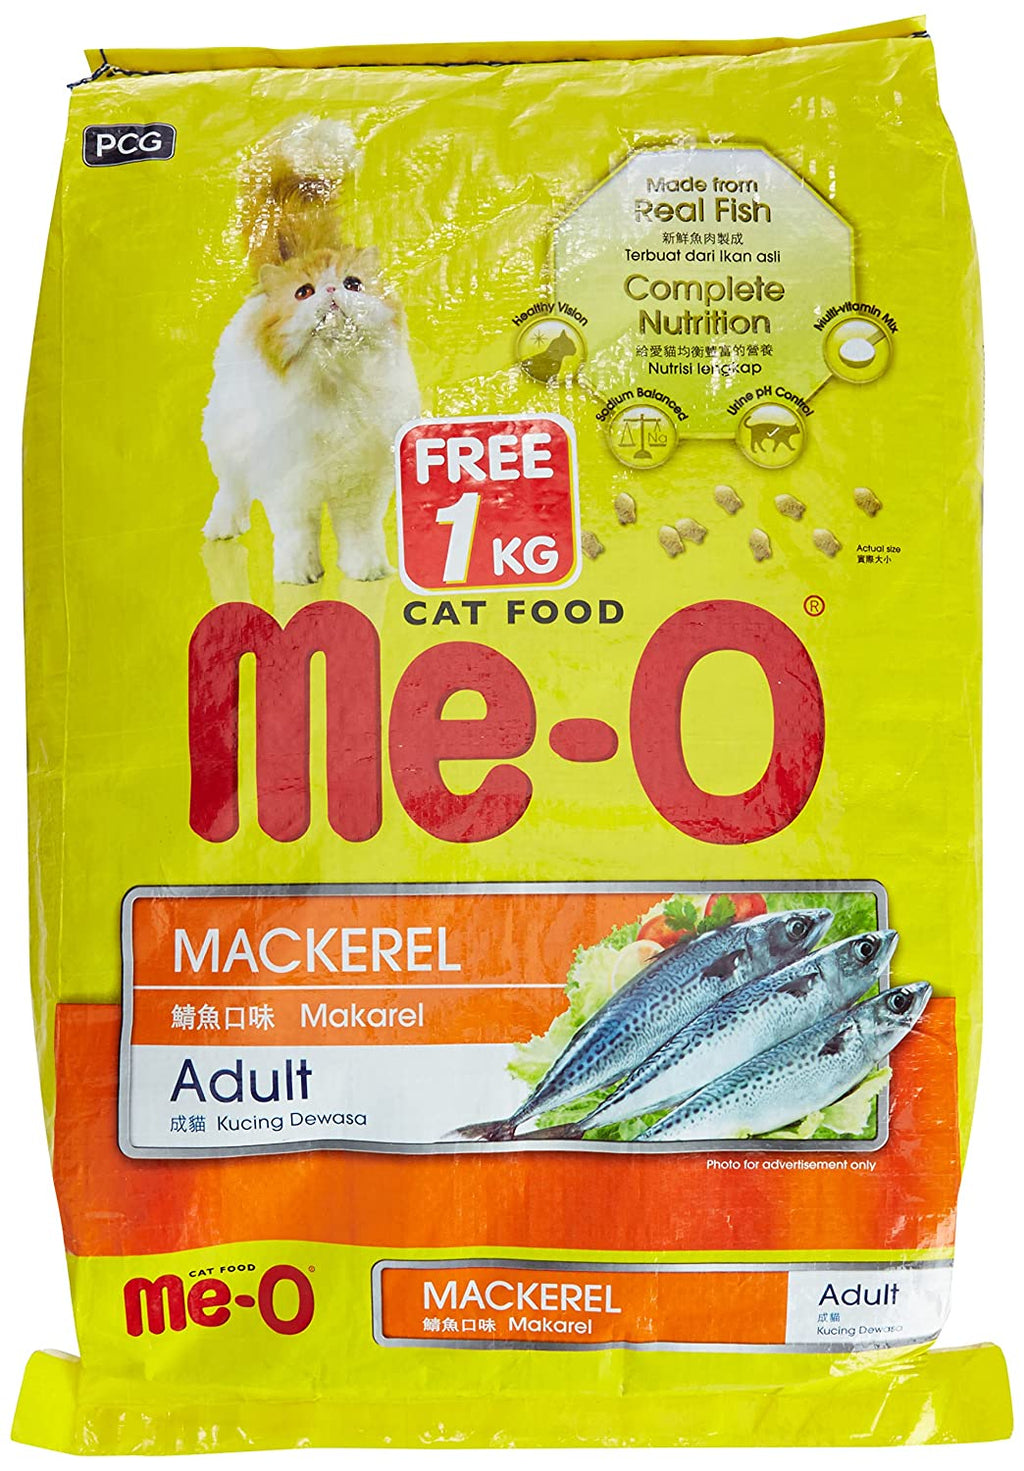 Me-O Mackerel